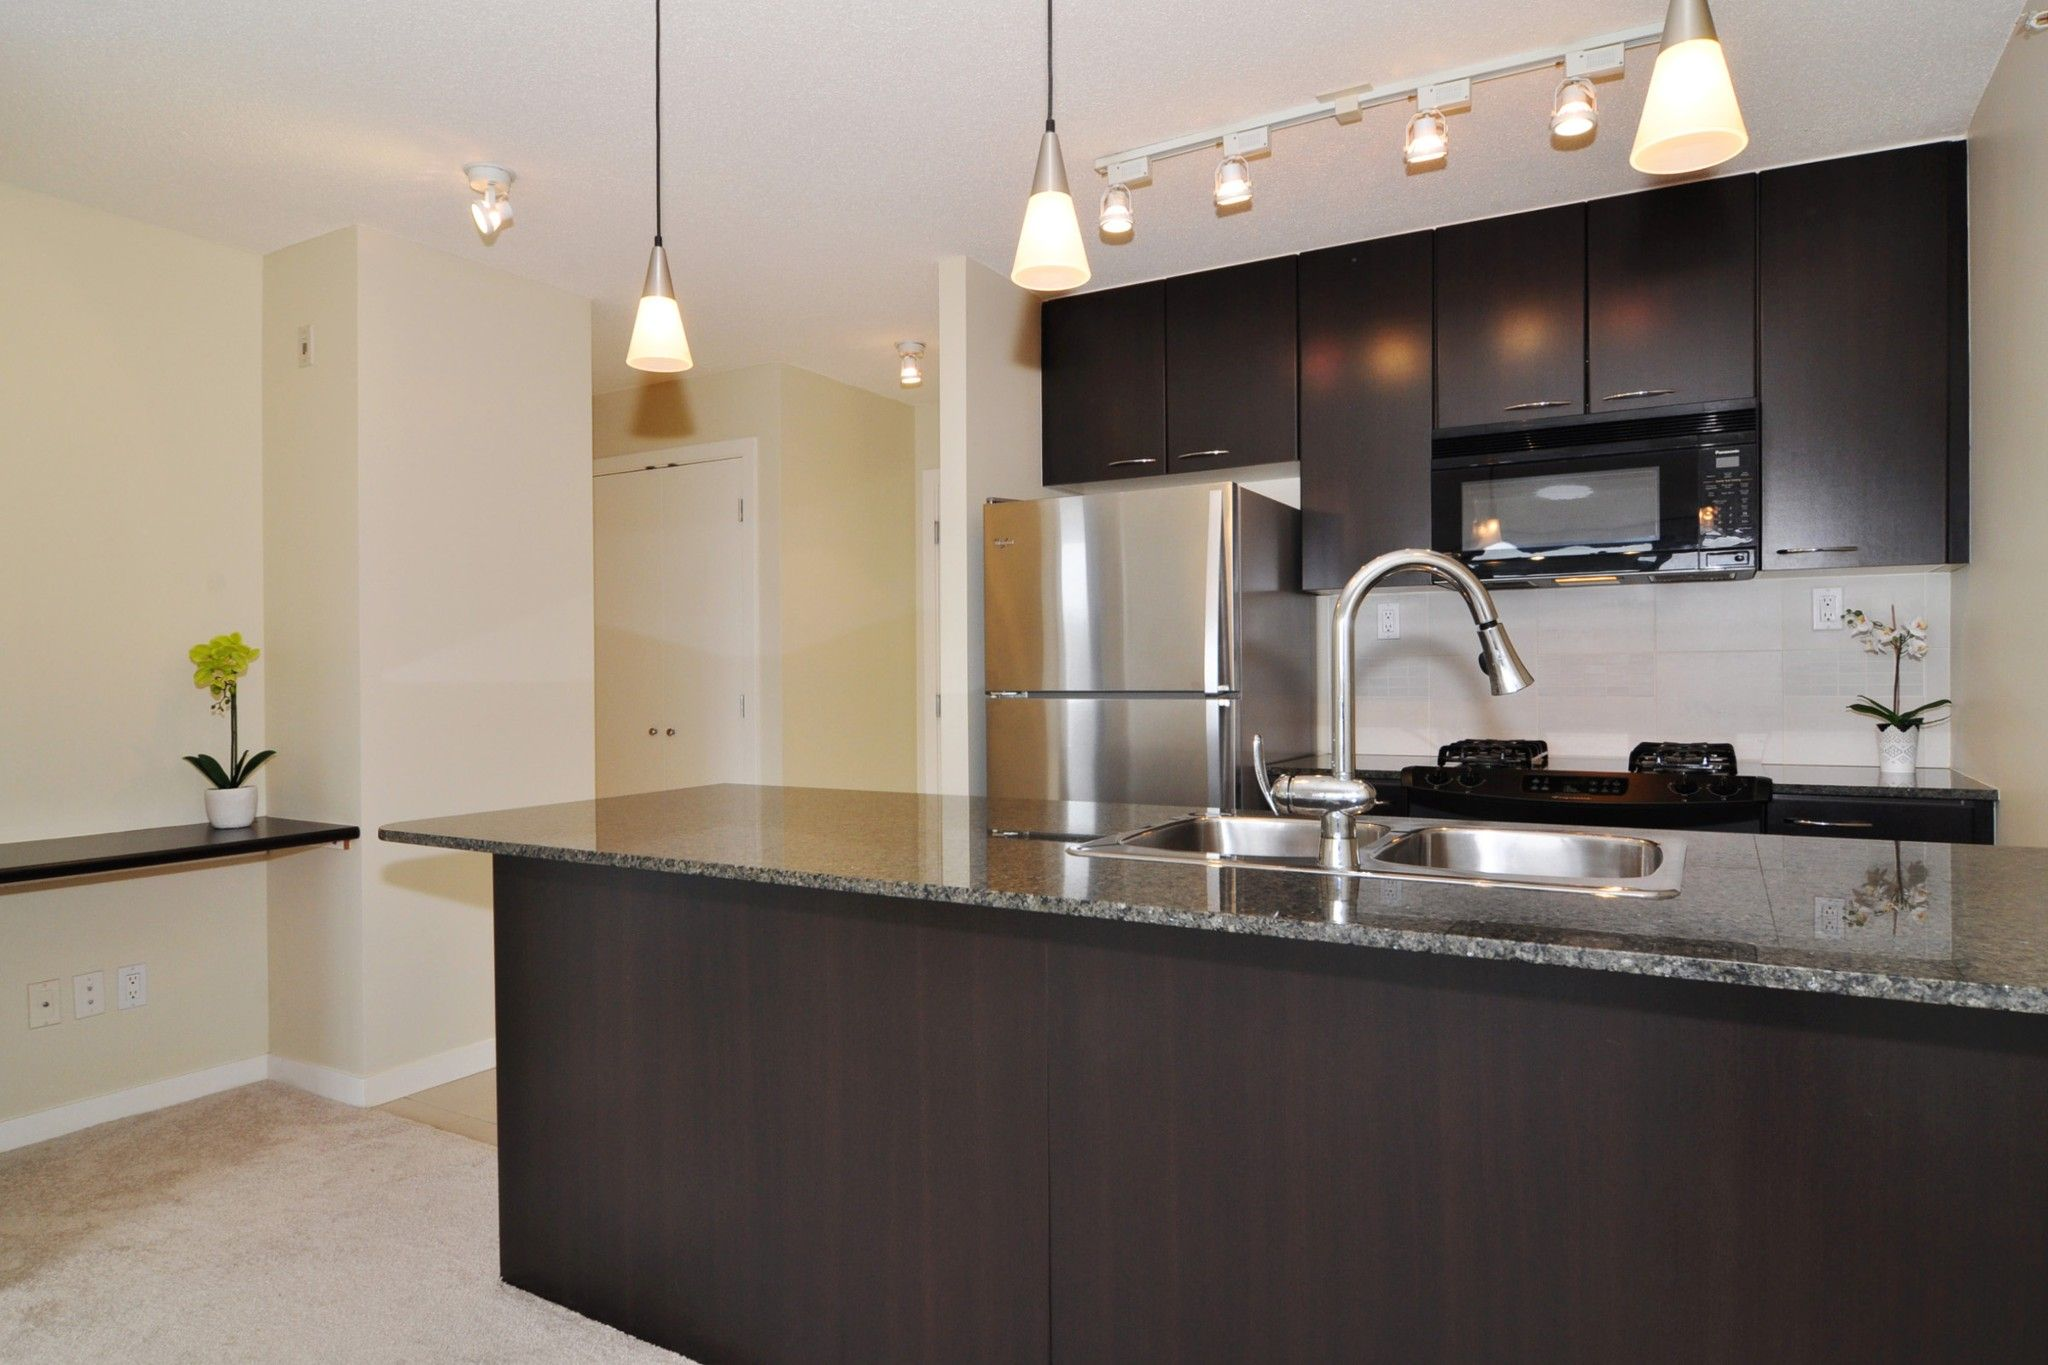 """Photo 5: Photos: 312 7138 COLLIER Street in Burnaby: Highgate Condo for sale in """"STANDFORD HOUSE"""" (Burnaby South)  : MLS®# R2224760"""